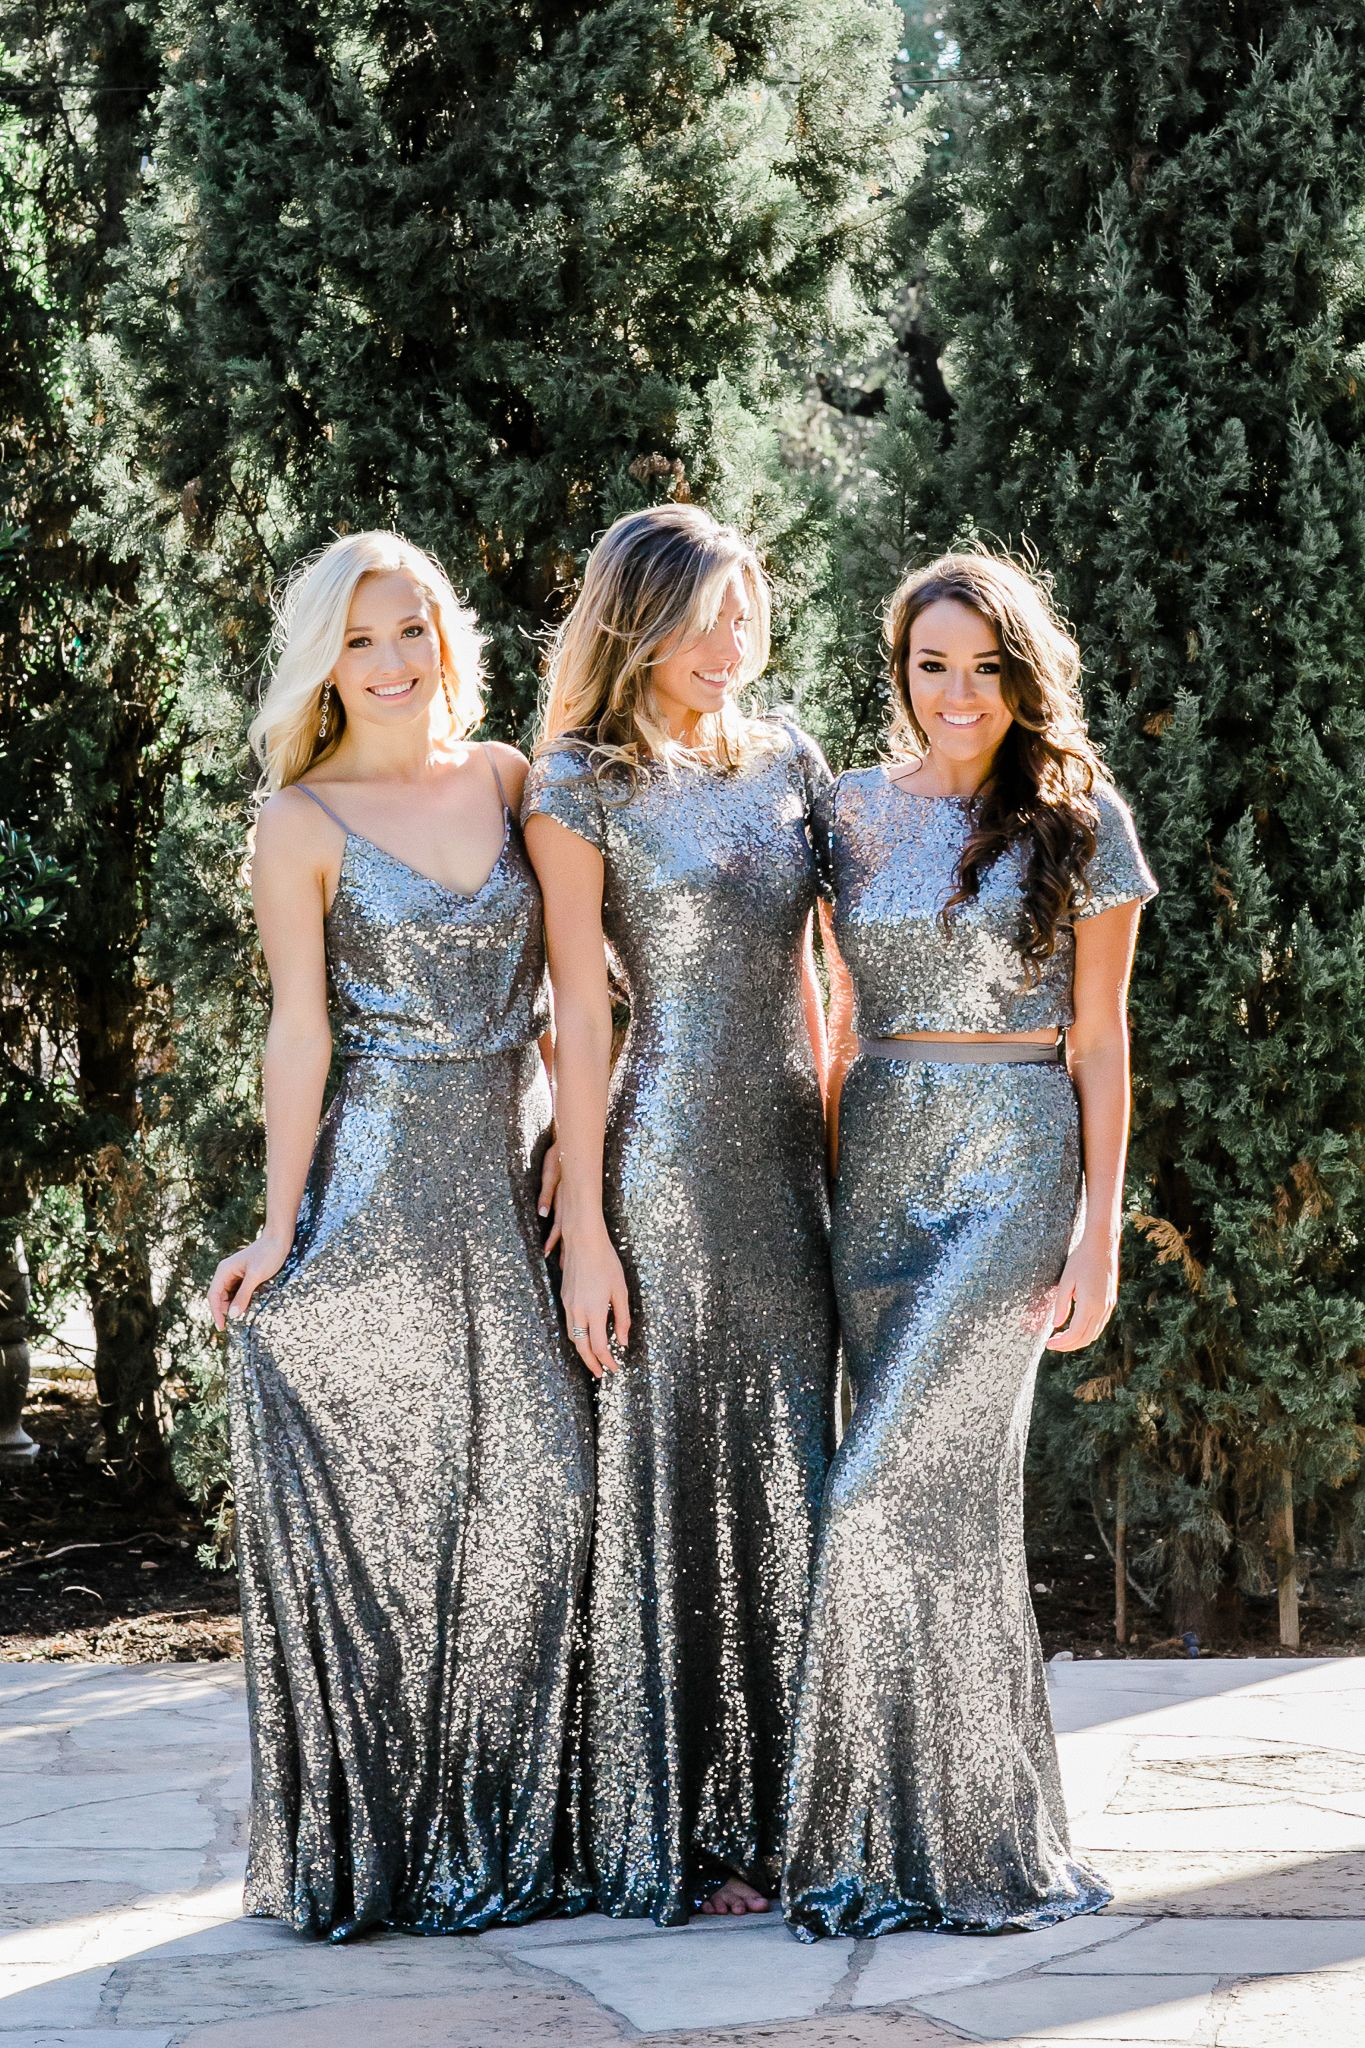 cc9feb9f293679 Mix and Match Revelry Bridesmaid Dresses and Separates.Revelry has a ...